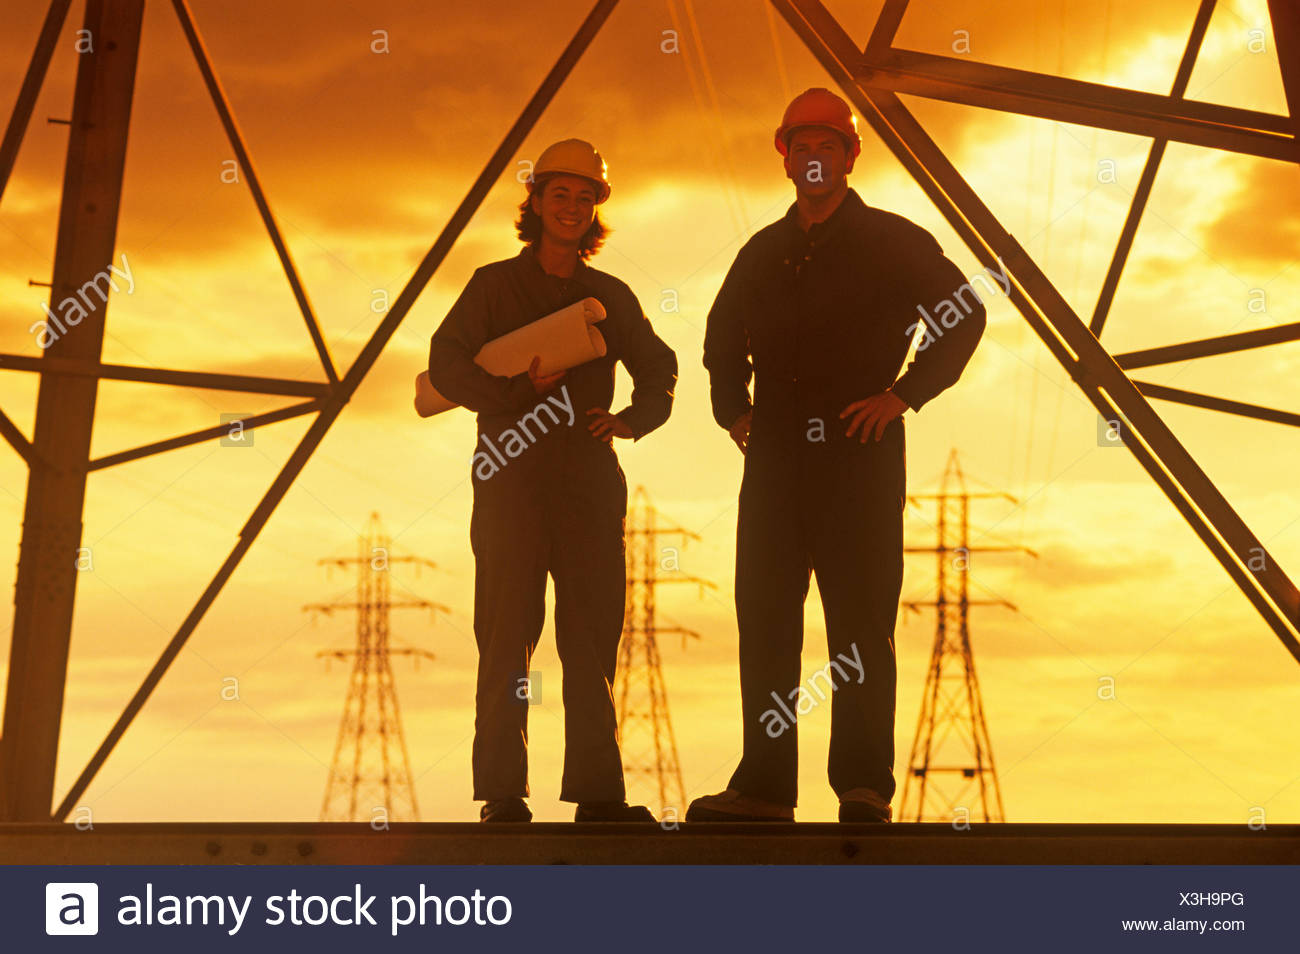 workers on an electrical tower, pylon, Manitoba, Canada - Stock Image